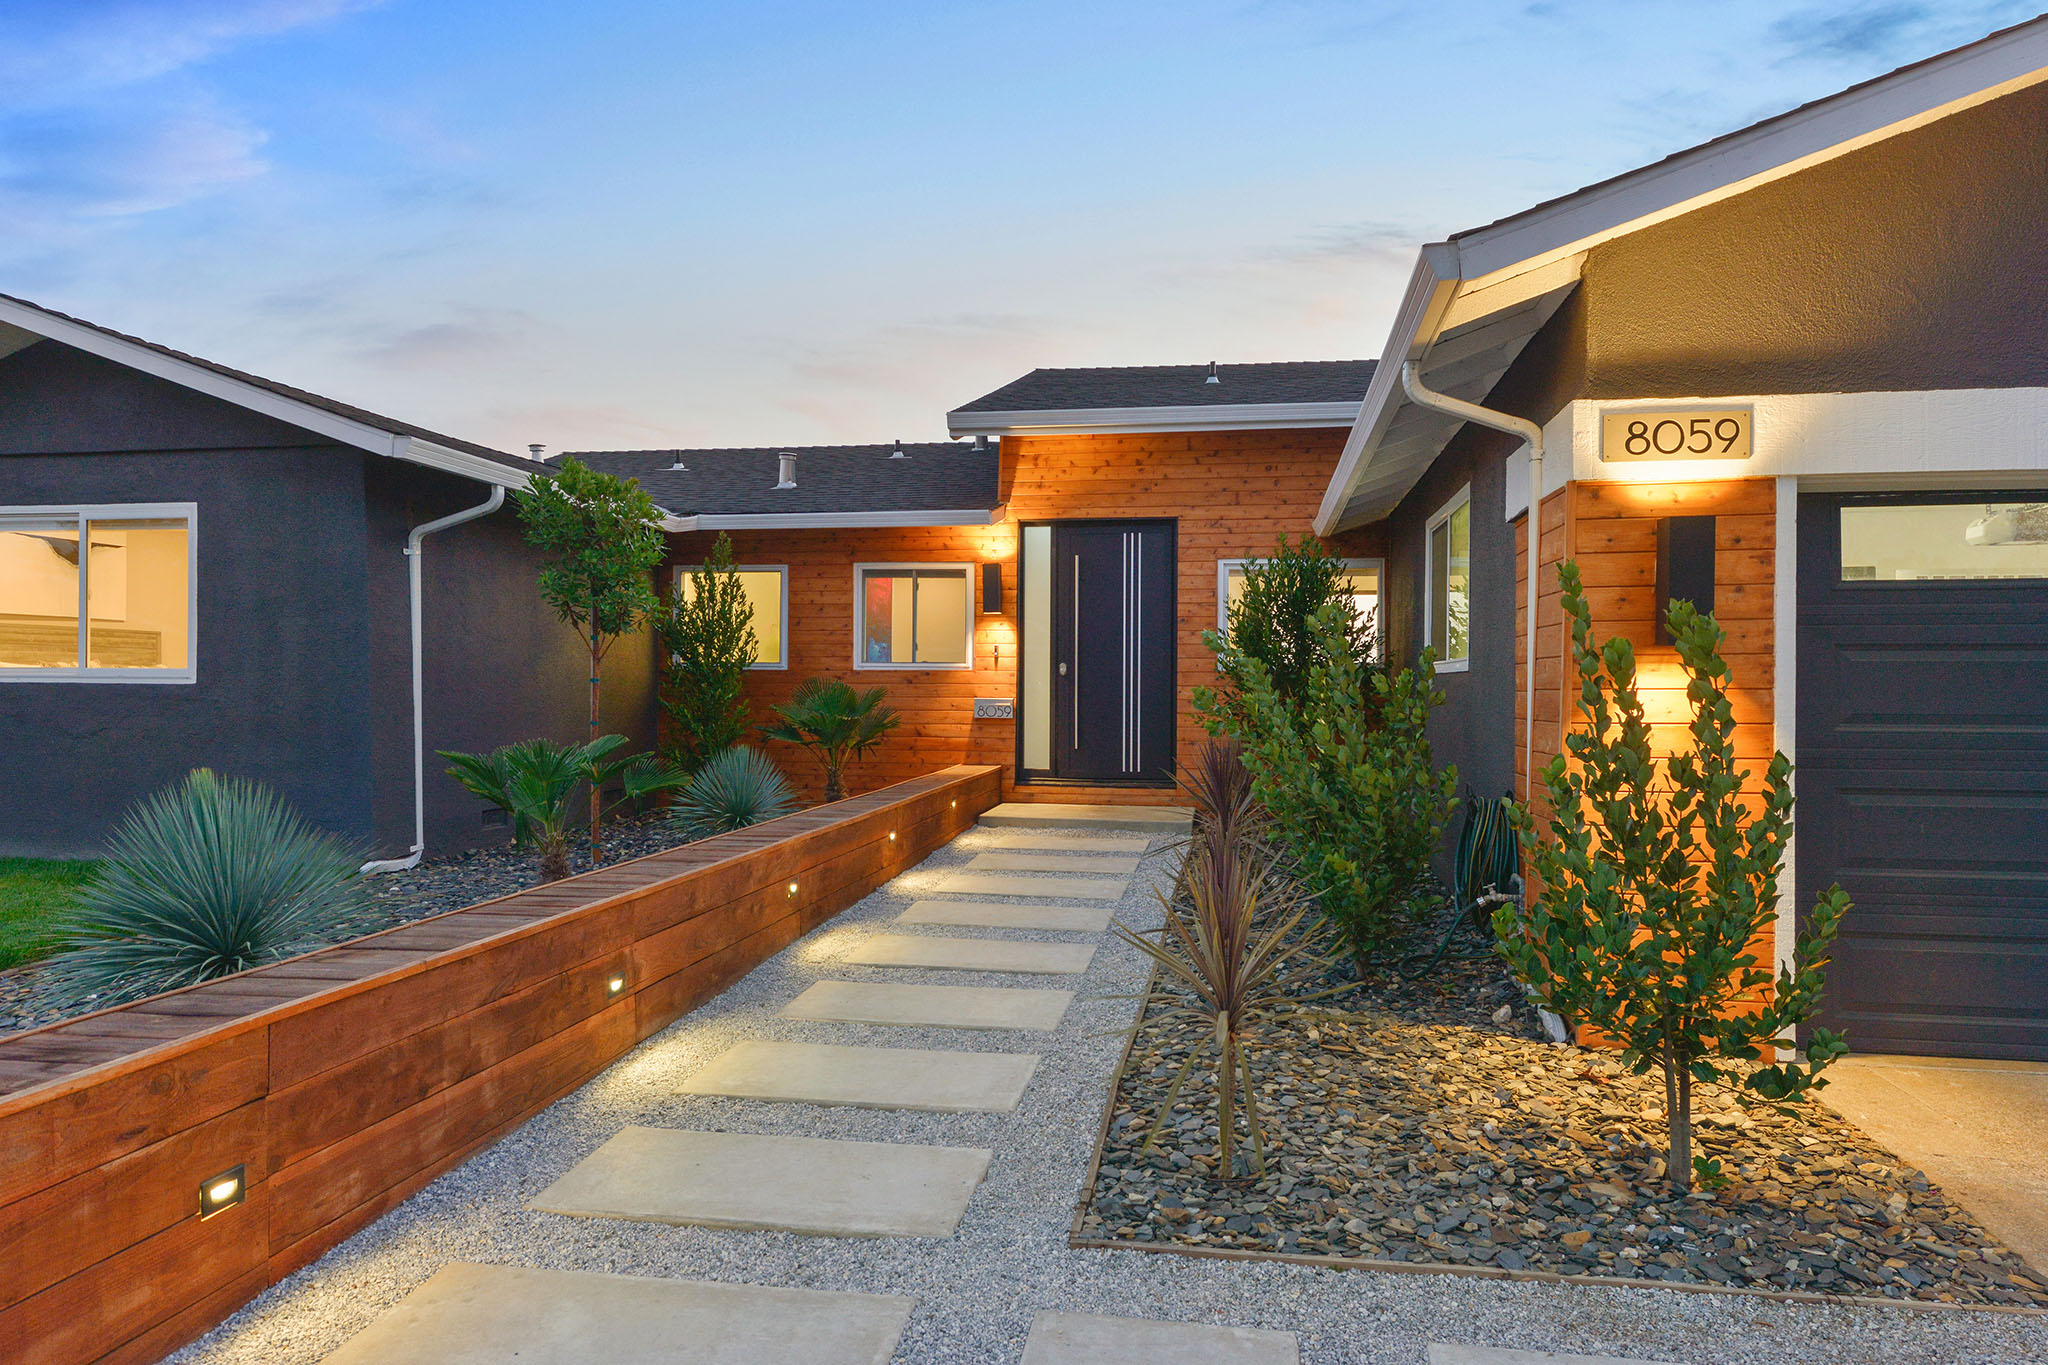 Gorgeous curb appeal with a modern look.